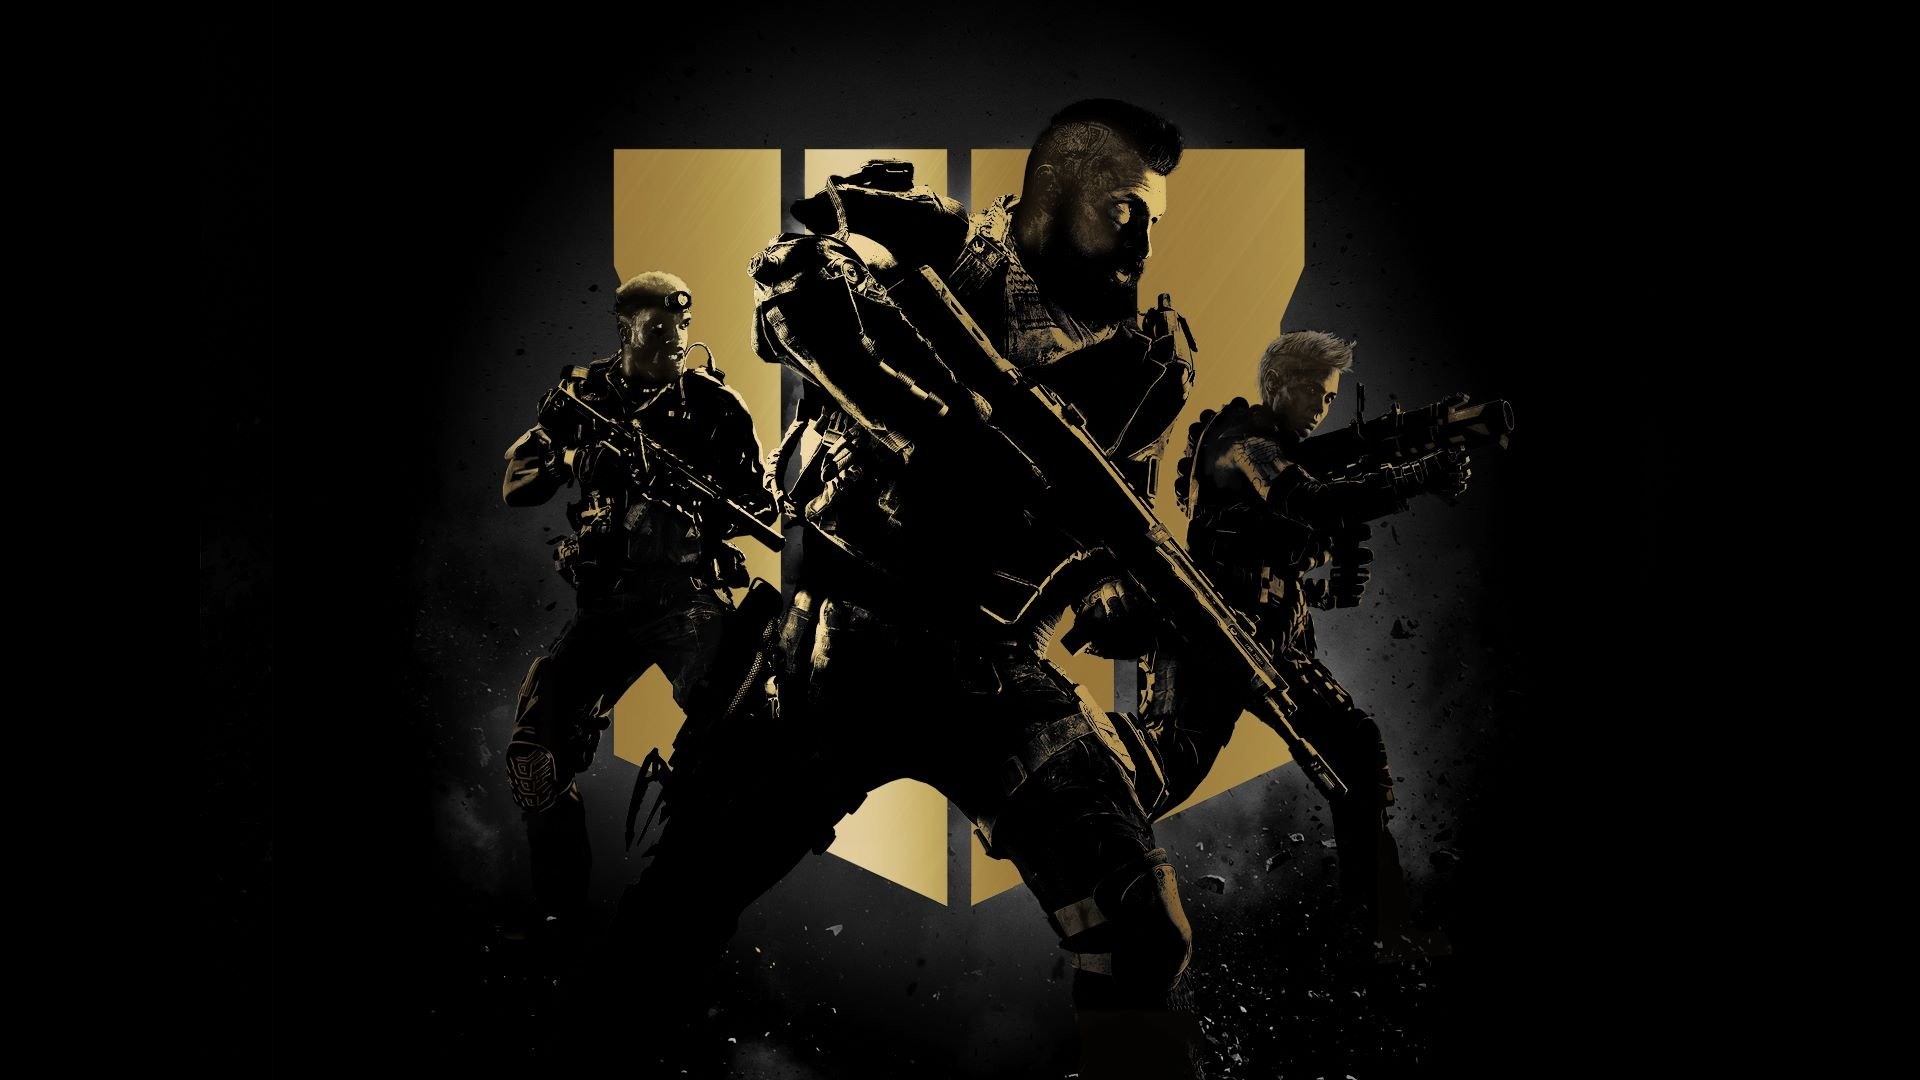 Call of Duty Black Ops 4 promotional art